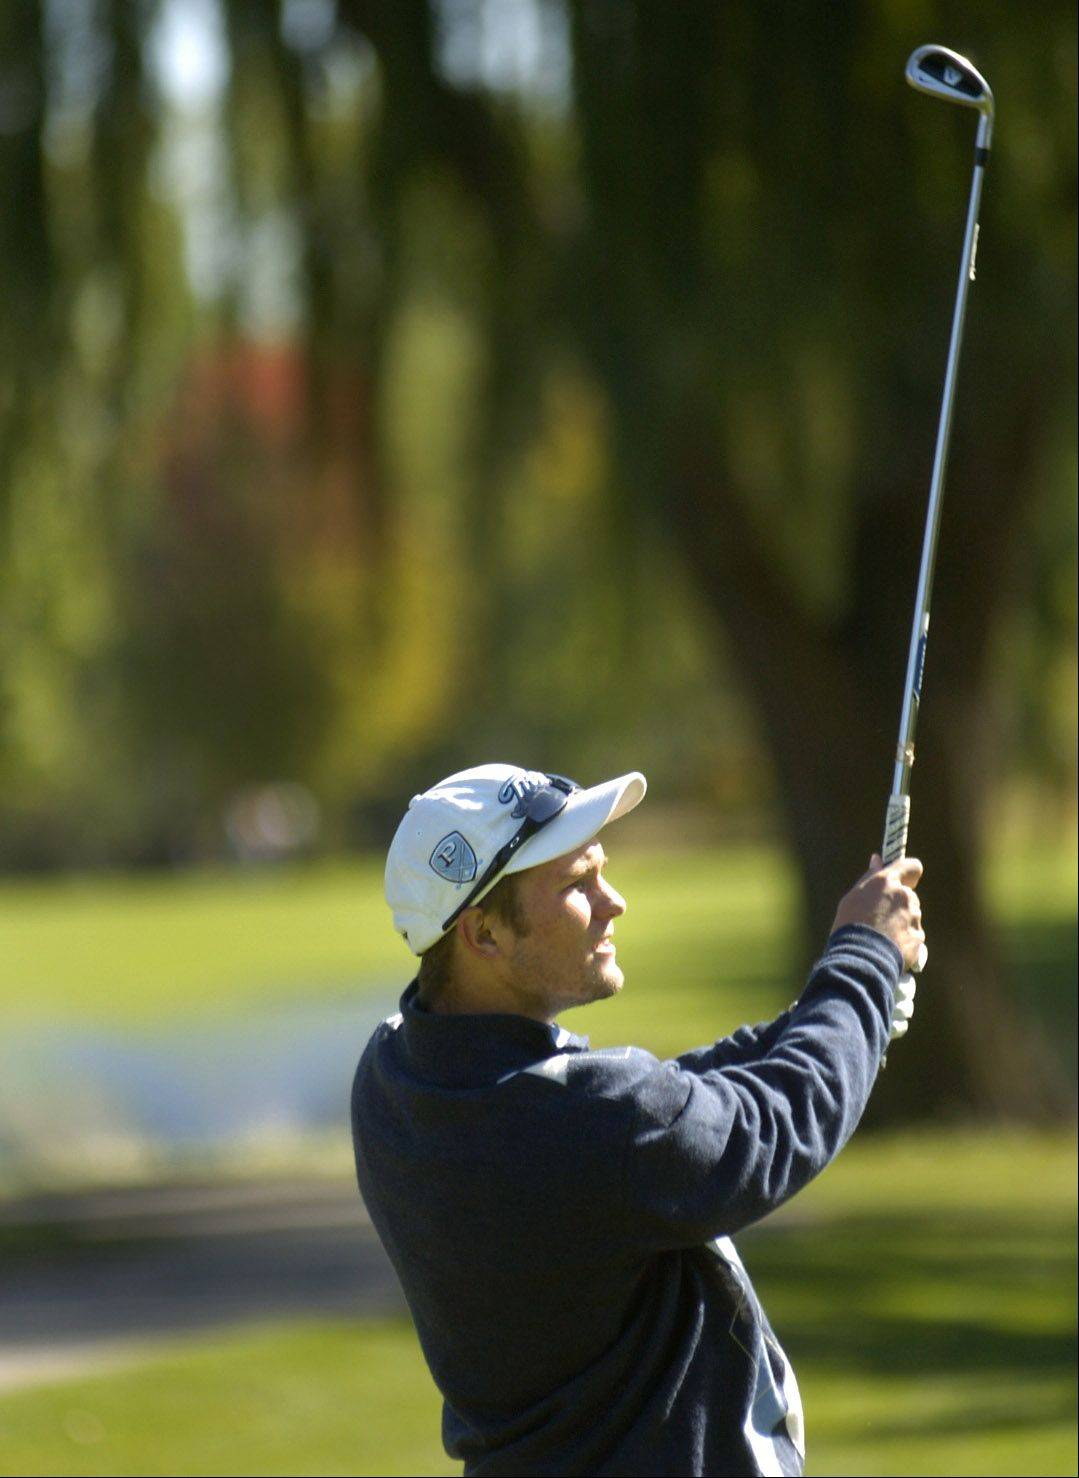 Prospect's Josh Johnson tees off on No. 8 during the Mid-Suburban League meet at Arlington Lakes.